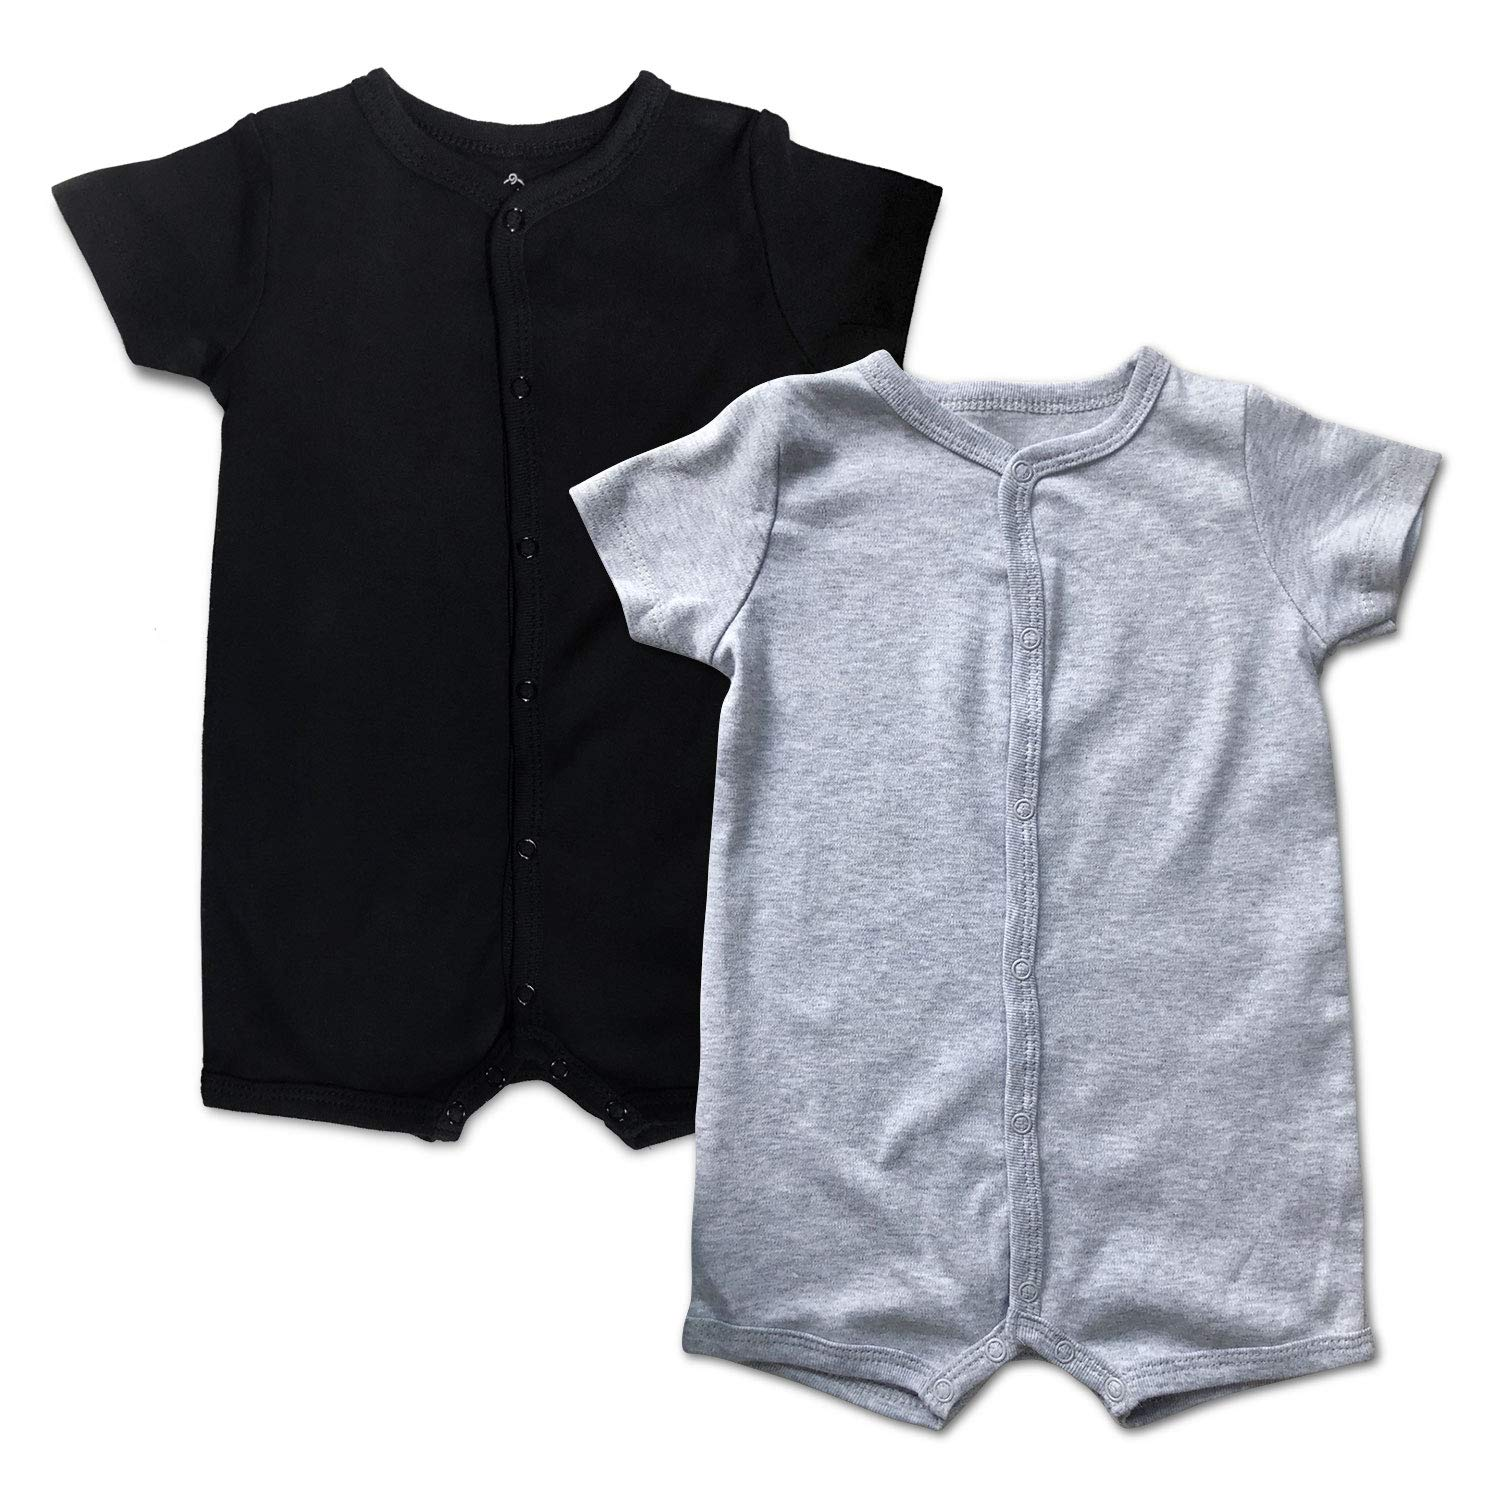 DEFAHN Baby Boys Girls Short/Long Sleeve Rompers, 2 Pack Solid Color Cotton One-Piece Jumpsuit Coverall